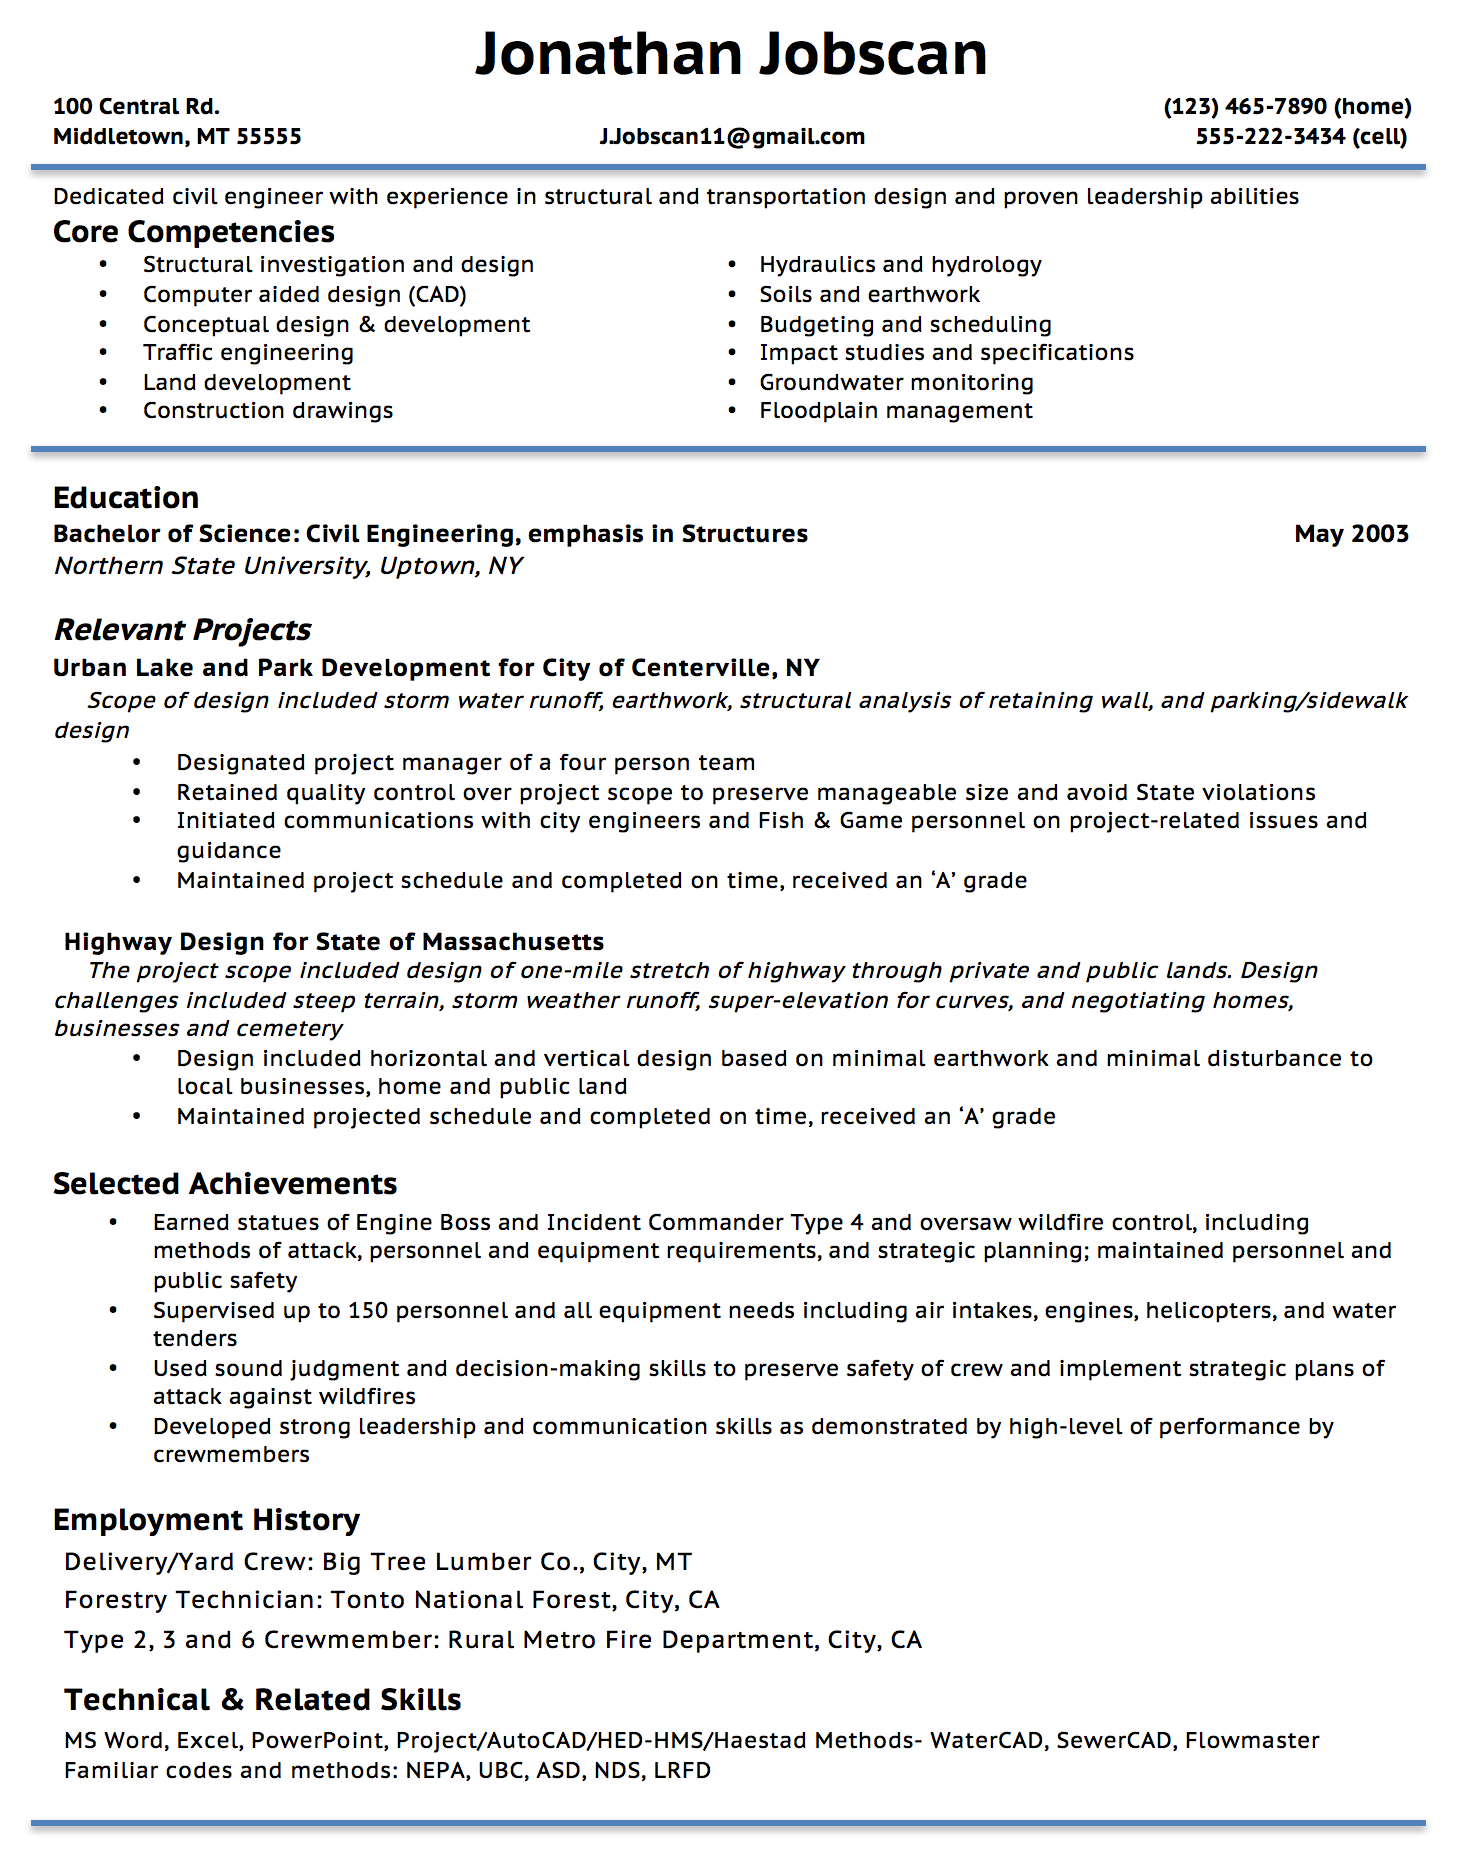 Opposenewapstandardsus  Personable Resume Writing Guide  Jobscan With Heavenly Example Of A Functional Resume Format With Lovely Cosmetology Resume Templates Also Microsoft Office Templates Resume In Addition Market Research Resume And Resume For Teenager With No Work Experience As Well As Resume Qualities Additionally Example Of Teacher Resume From Jobscanco With Opposenewapstandardsus  Heavenly Resume Writing Guide  Jobscan With Lovely Example Of A Functional Resume Format And Personable Cosmetology Resume Templates Also Microsoft Office Templates Resume In Addition Market Research Resume From Jobscanco